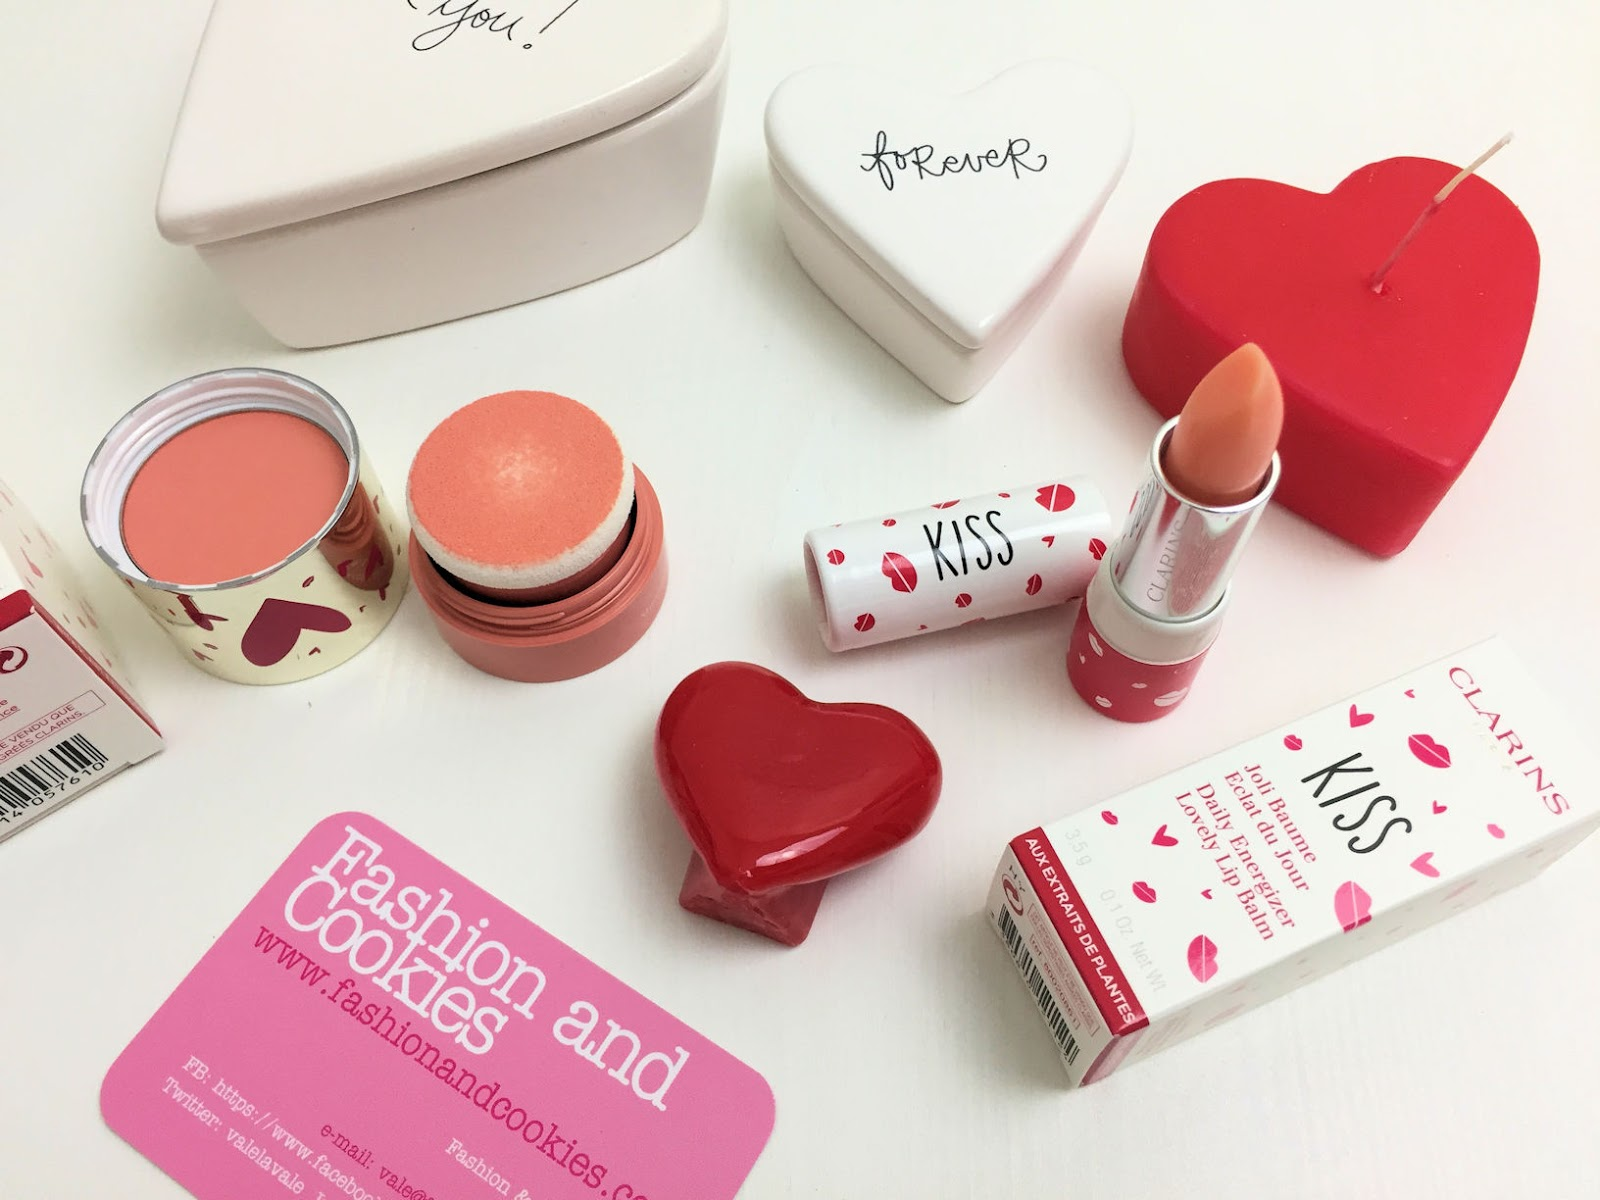 makeup di San Valentino con la capsule collection Clarins: Skin Illusion Blush e Joli Baume su Fashion and Cookies beauty blog, beauty blogger